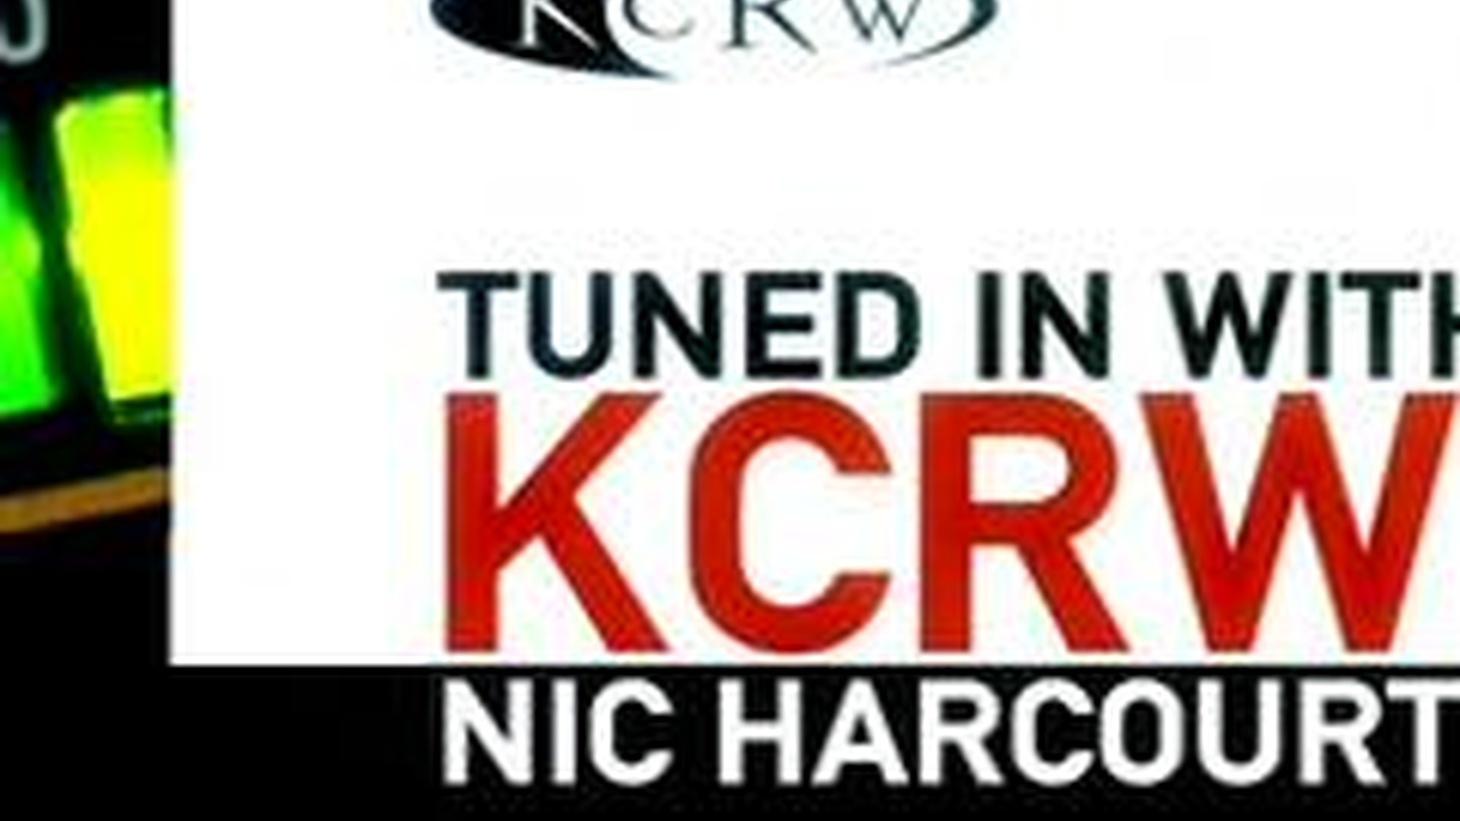 In the pilot episode of Tuned In, Nic Harcourt, the host of KCRW's Morning Becomes Eclectic and the nationally syndicated Sounds Eclectic, discusses the latest from...